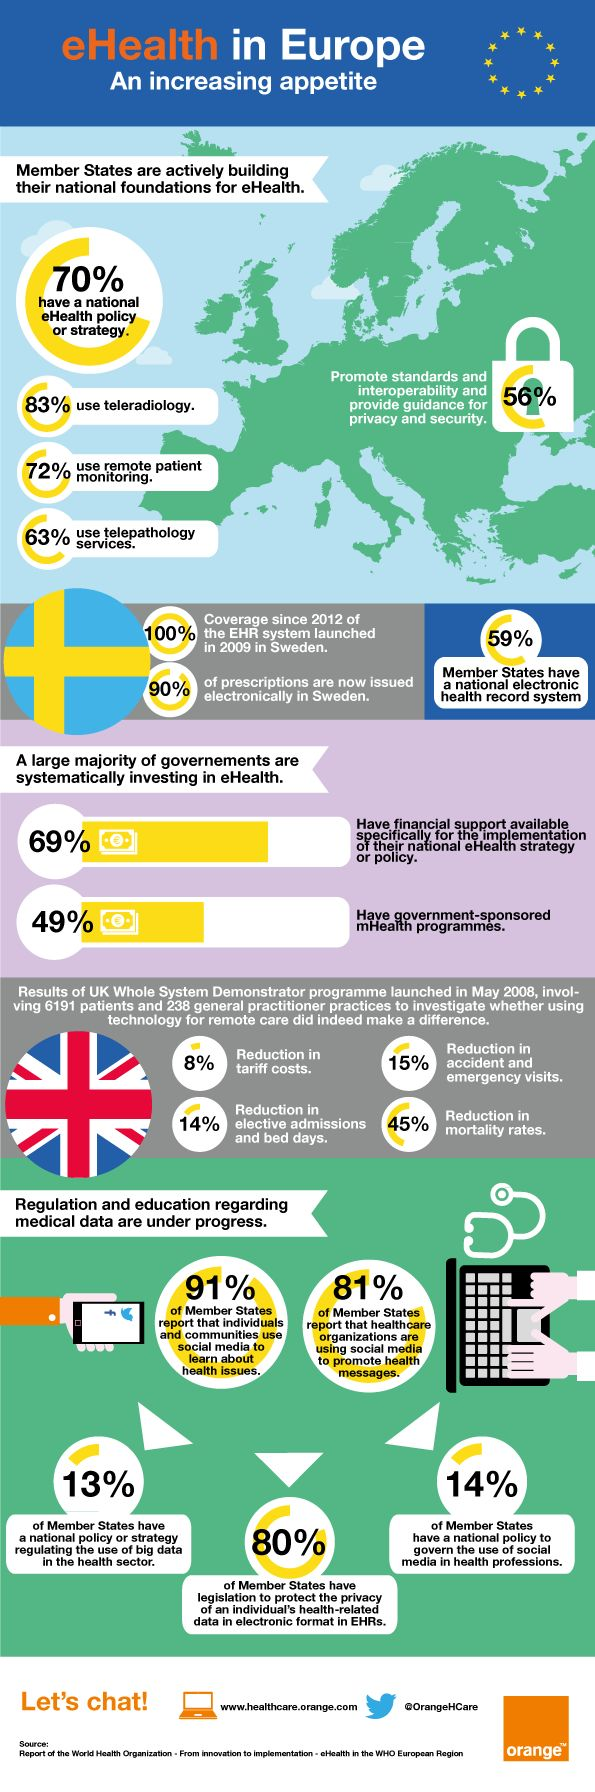 1604 [infographic] eHealth in Europe